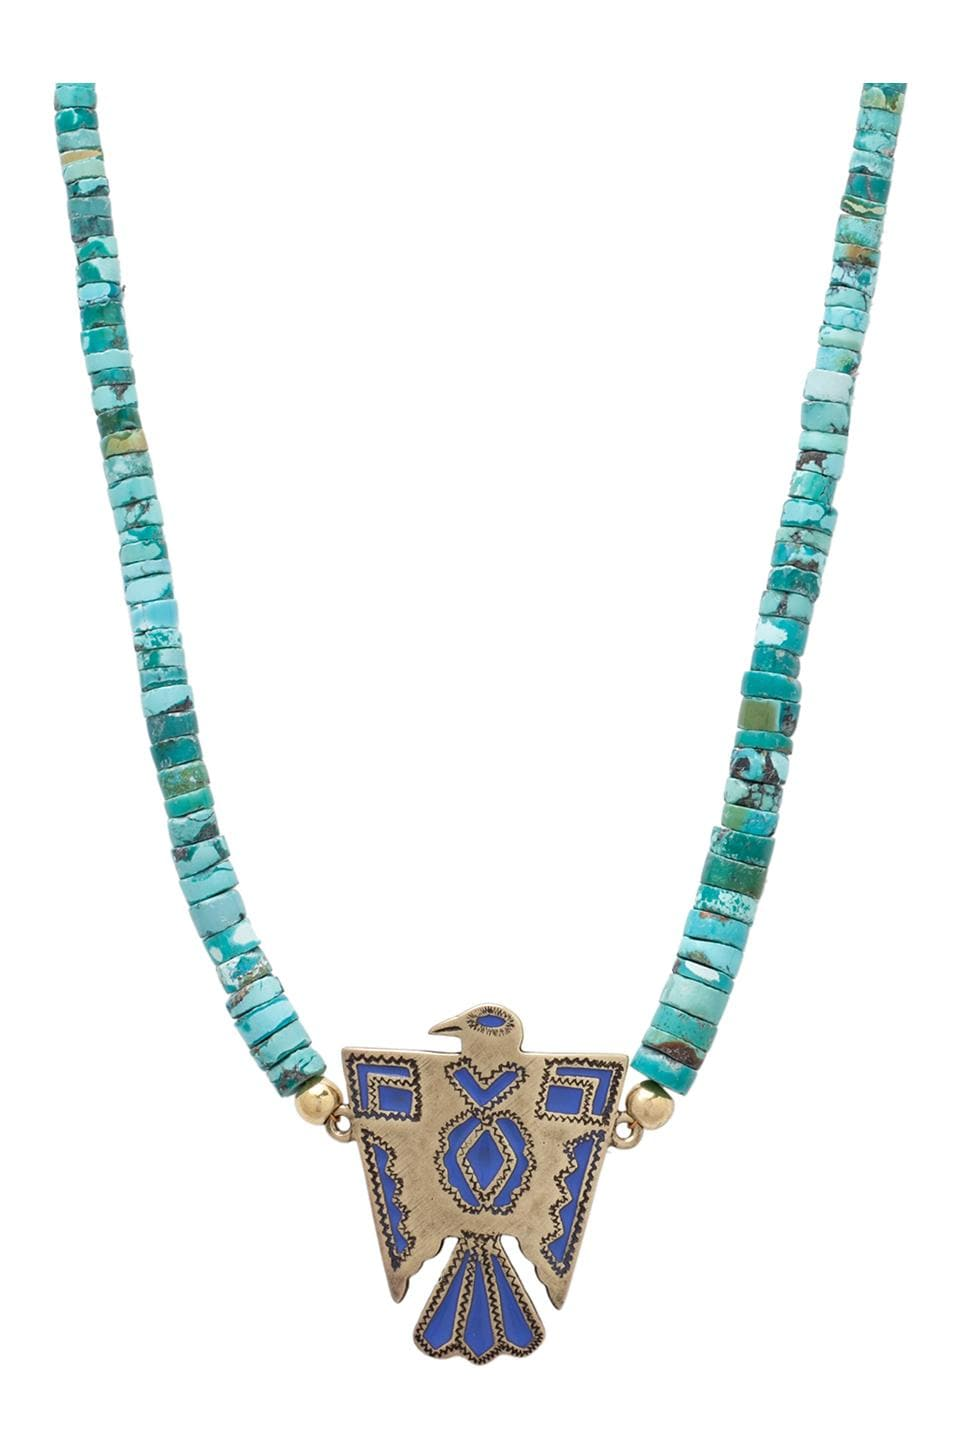 Vanessa Mooney Visions of You Necklace in Turquoise